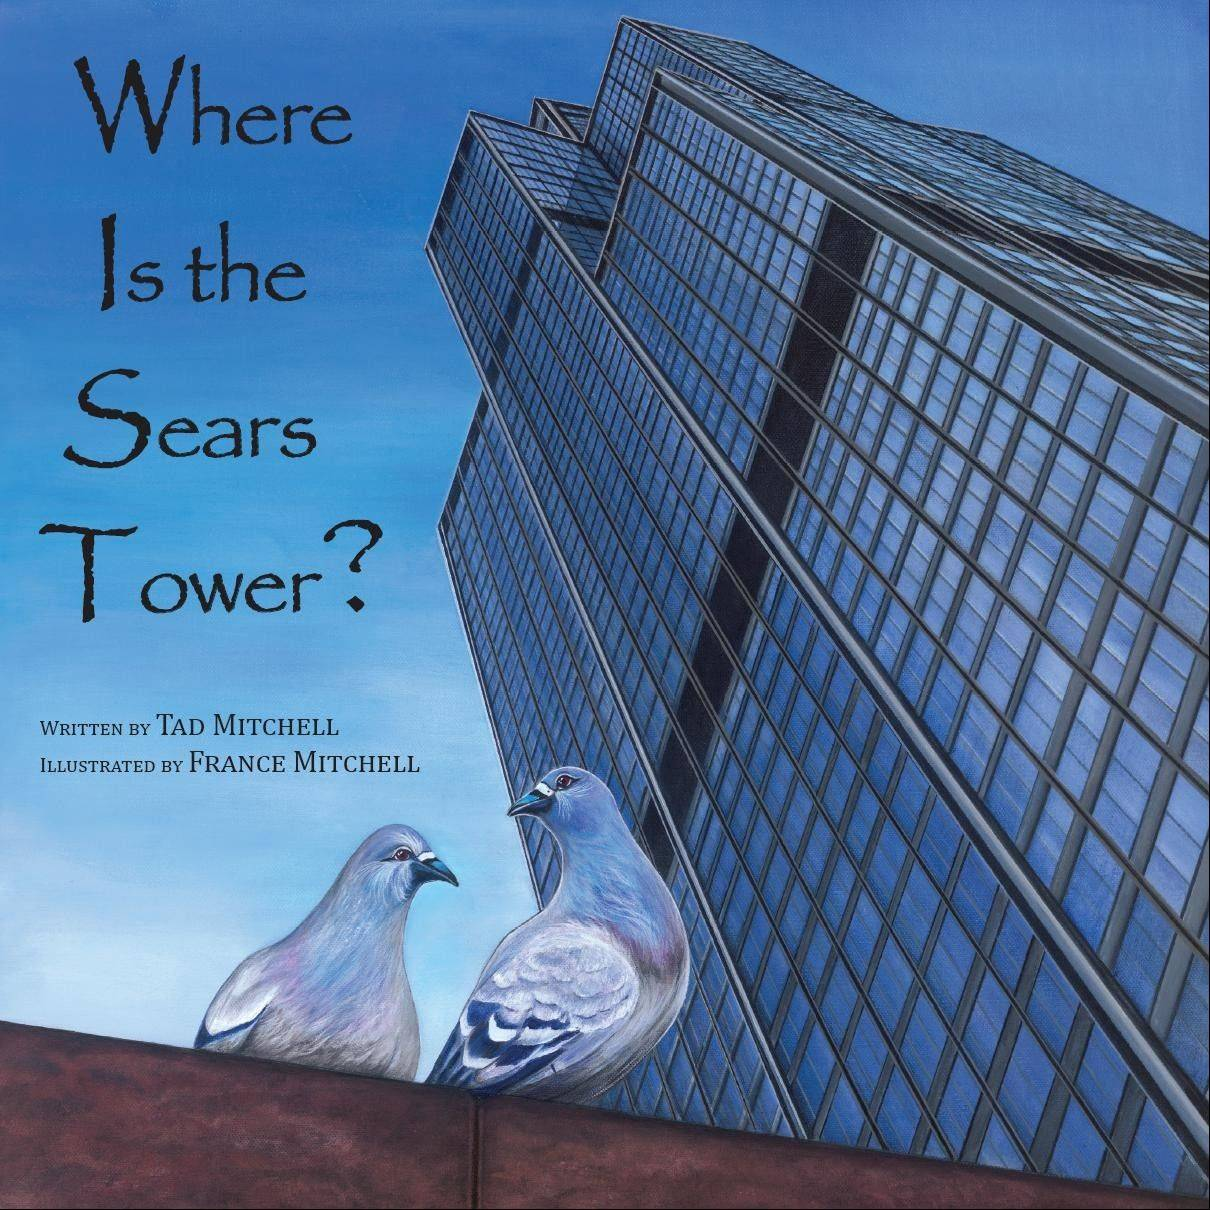 Inspired by sightseeing in Chicago, Tad and France Mitchell collaborated on a book that features the city's landmarks in a story about a traveling pigeon.